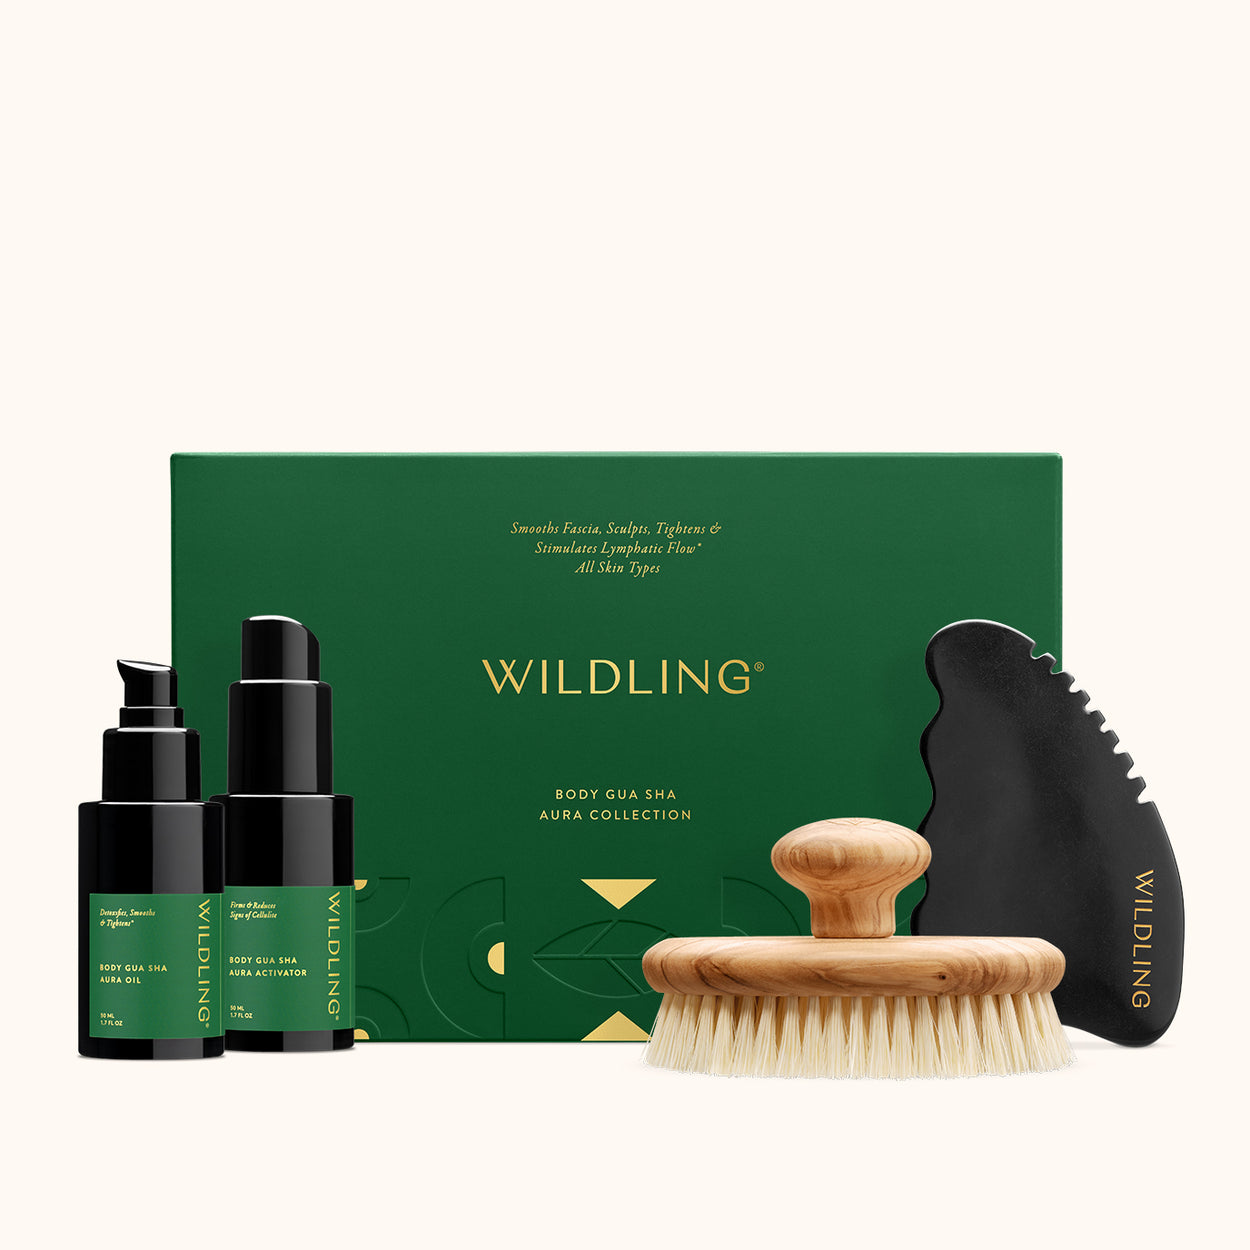 WLD-2113 Wildling Aura Body Gua Sha Collection